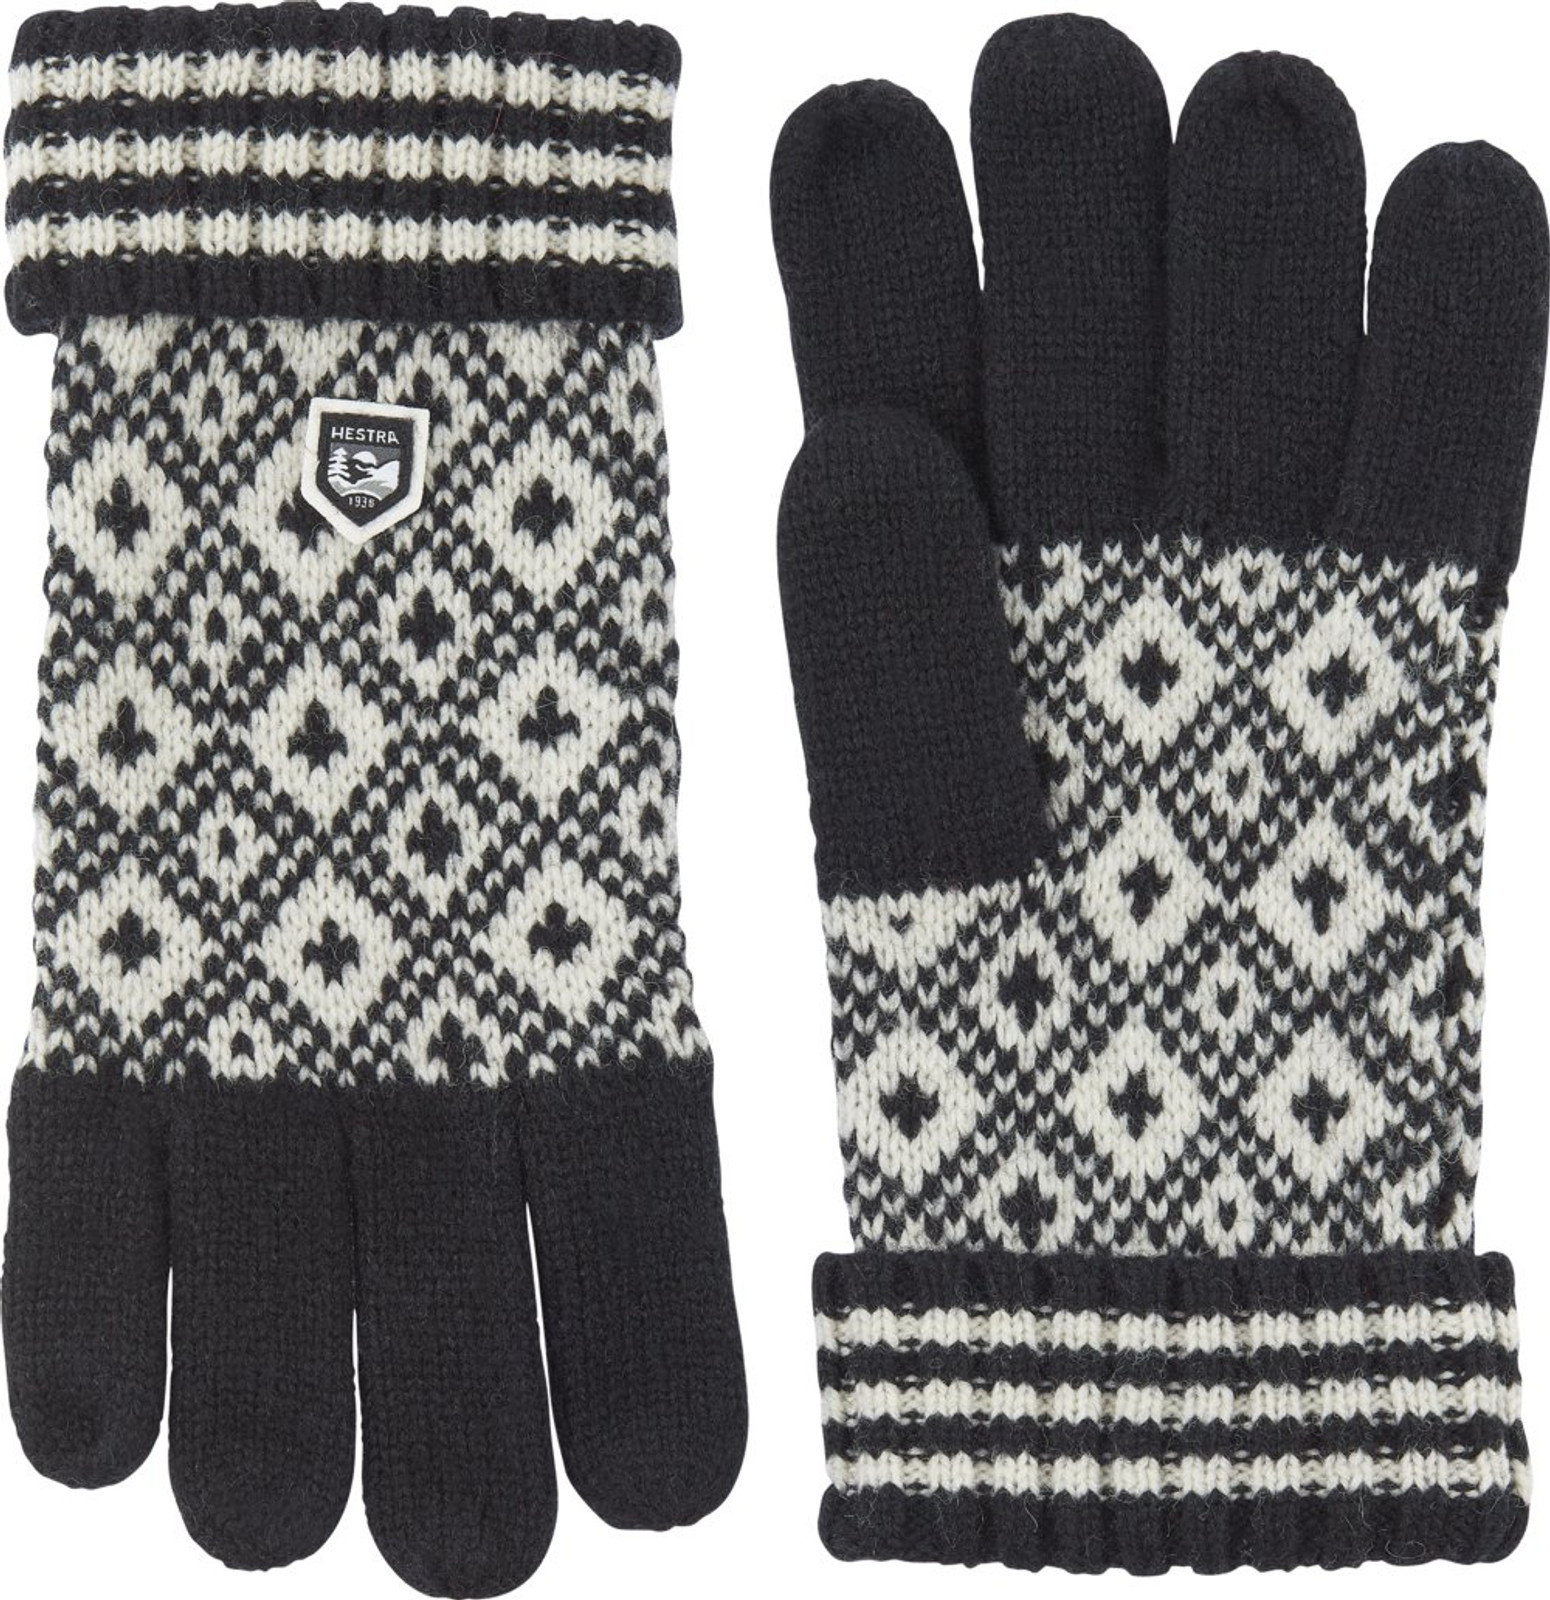 Hestra Fryken Wool Knit Unisex Gloves, Black/White (63780-100020)